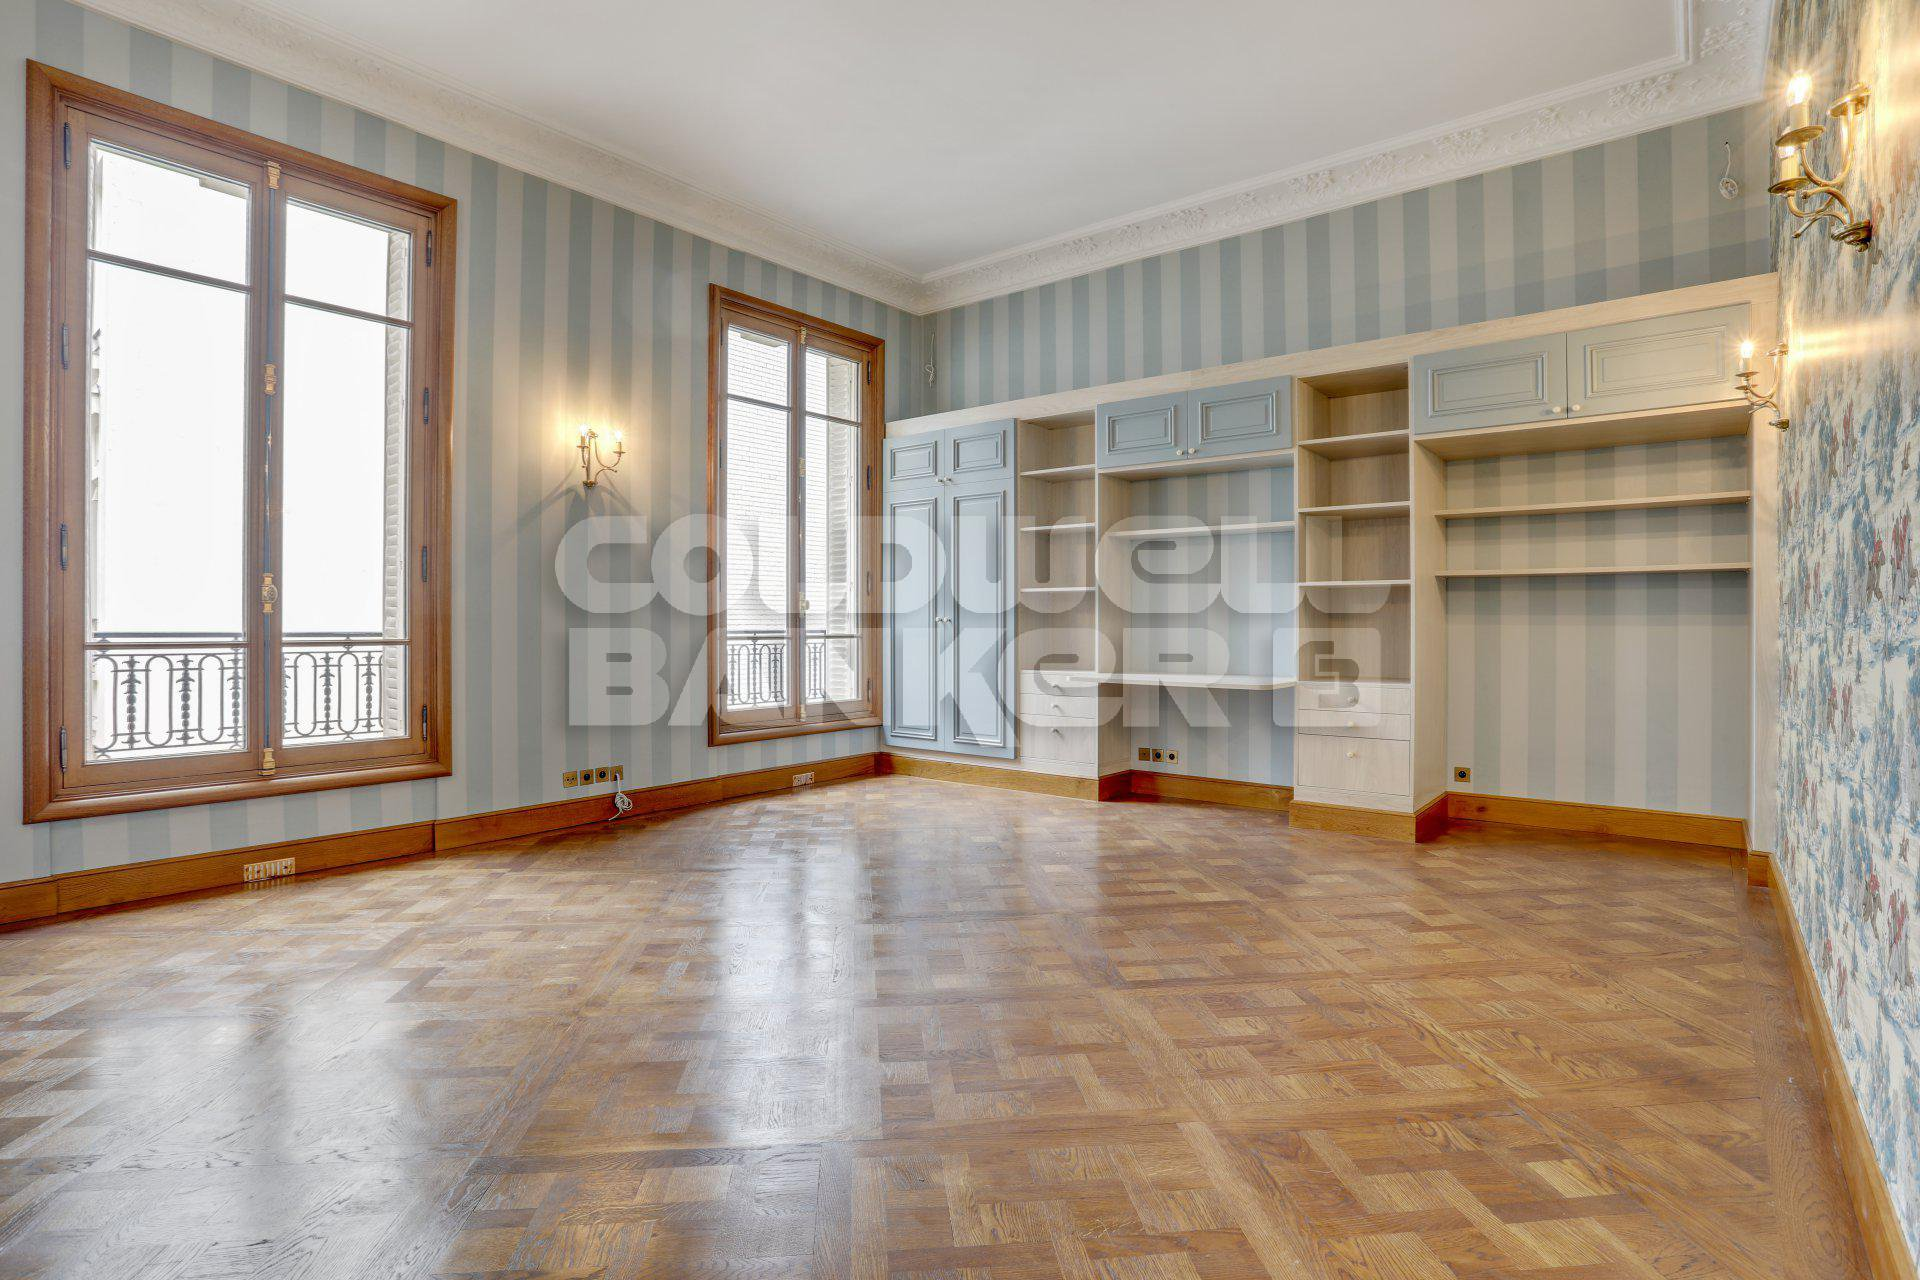 Sale Apartment - Paris 16th (Paris 16ème)